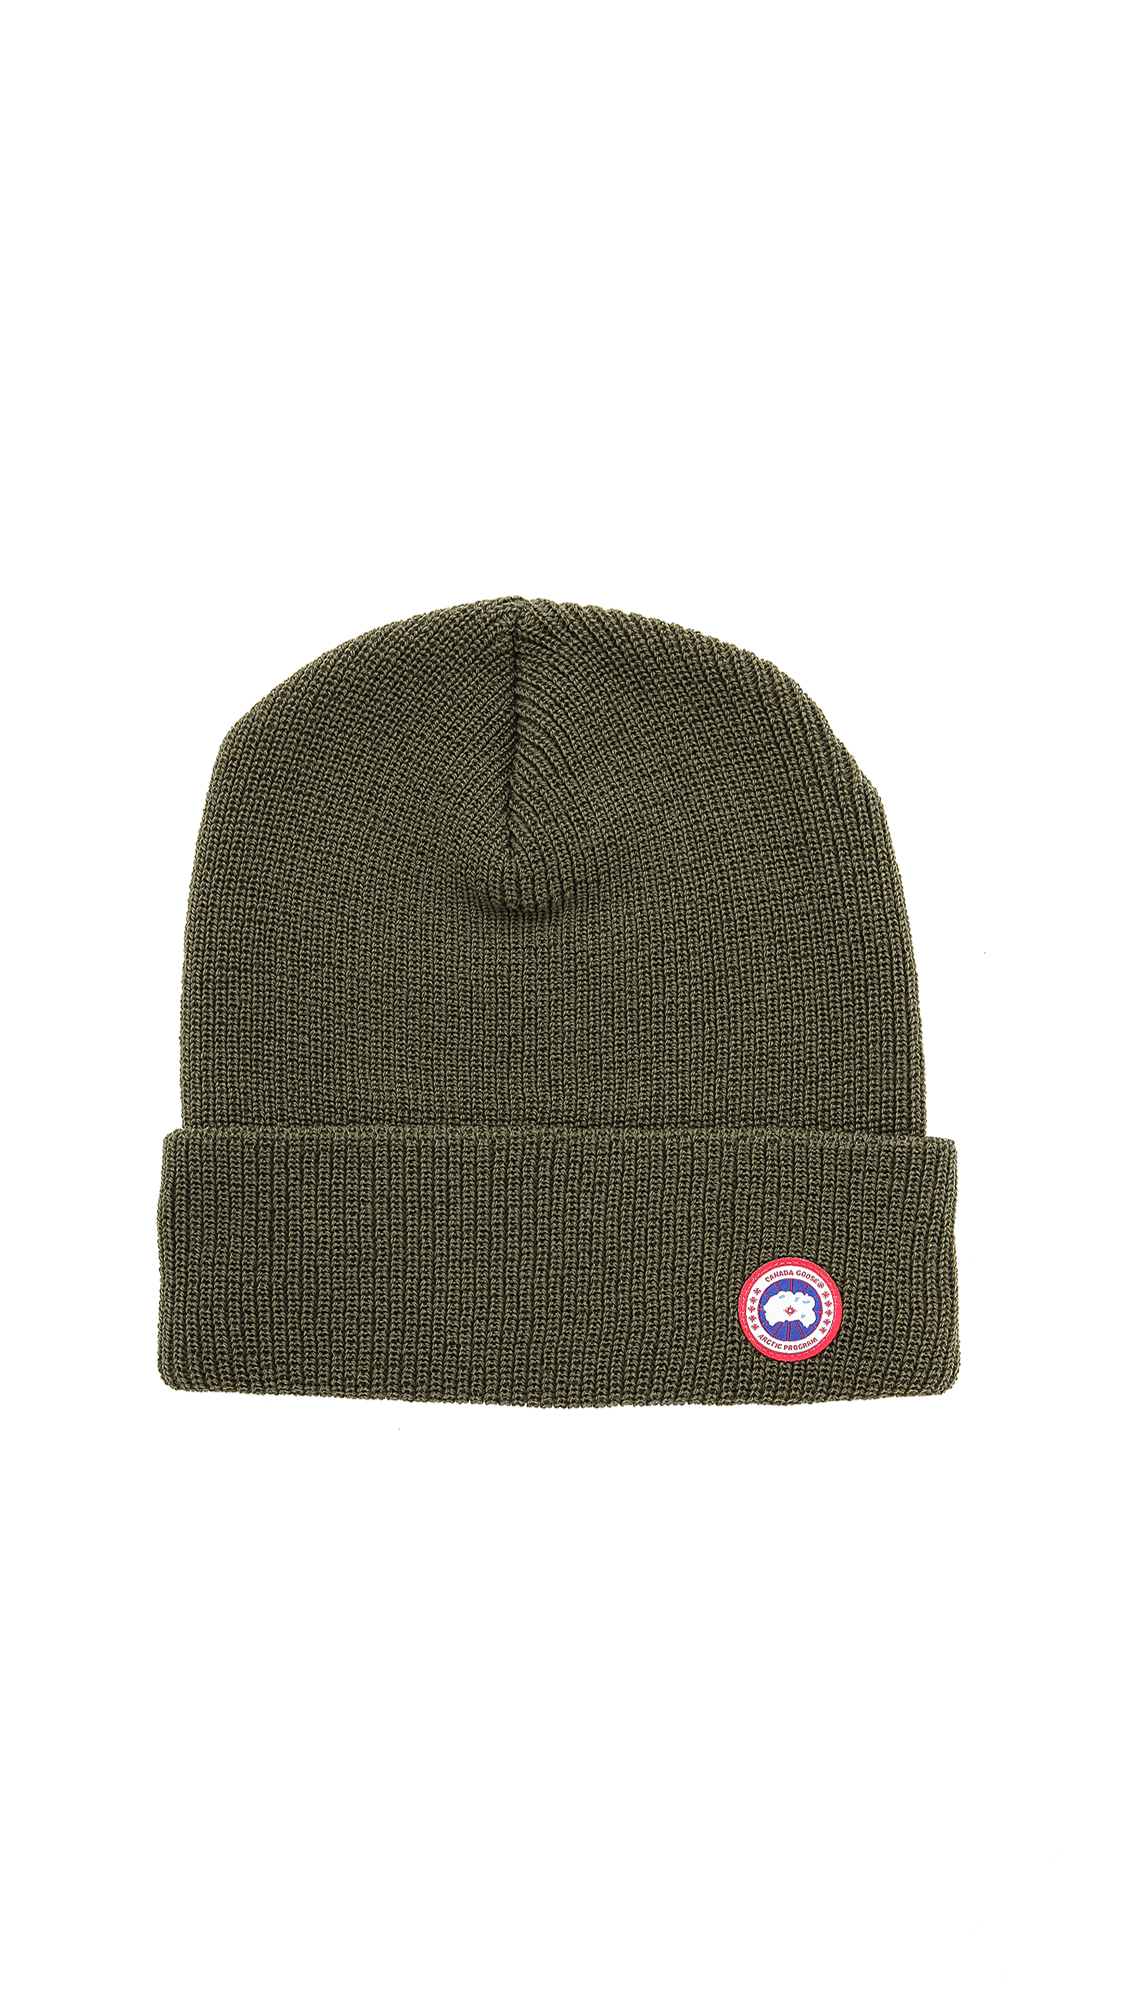 Canada Goose' Basket Weave Slouchy Hat - Military Green